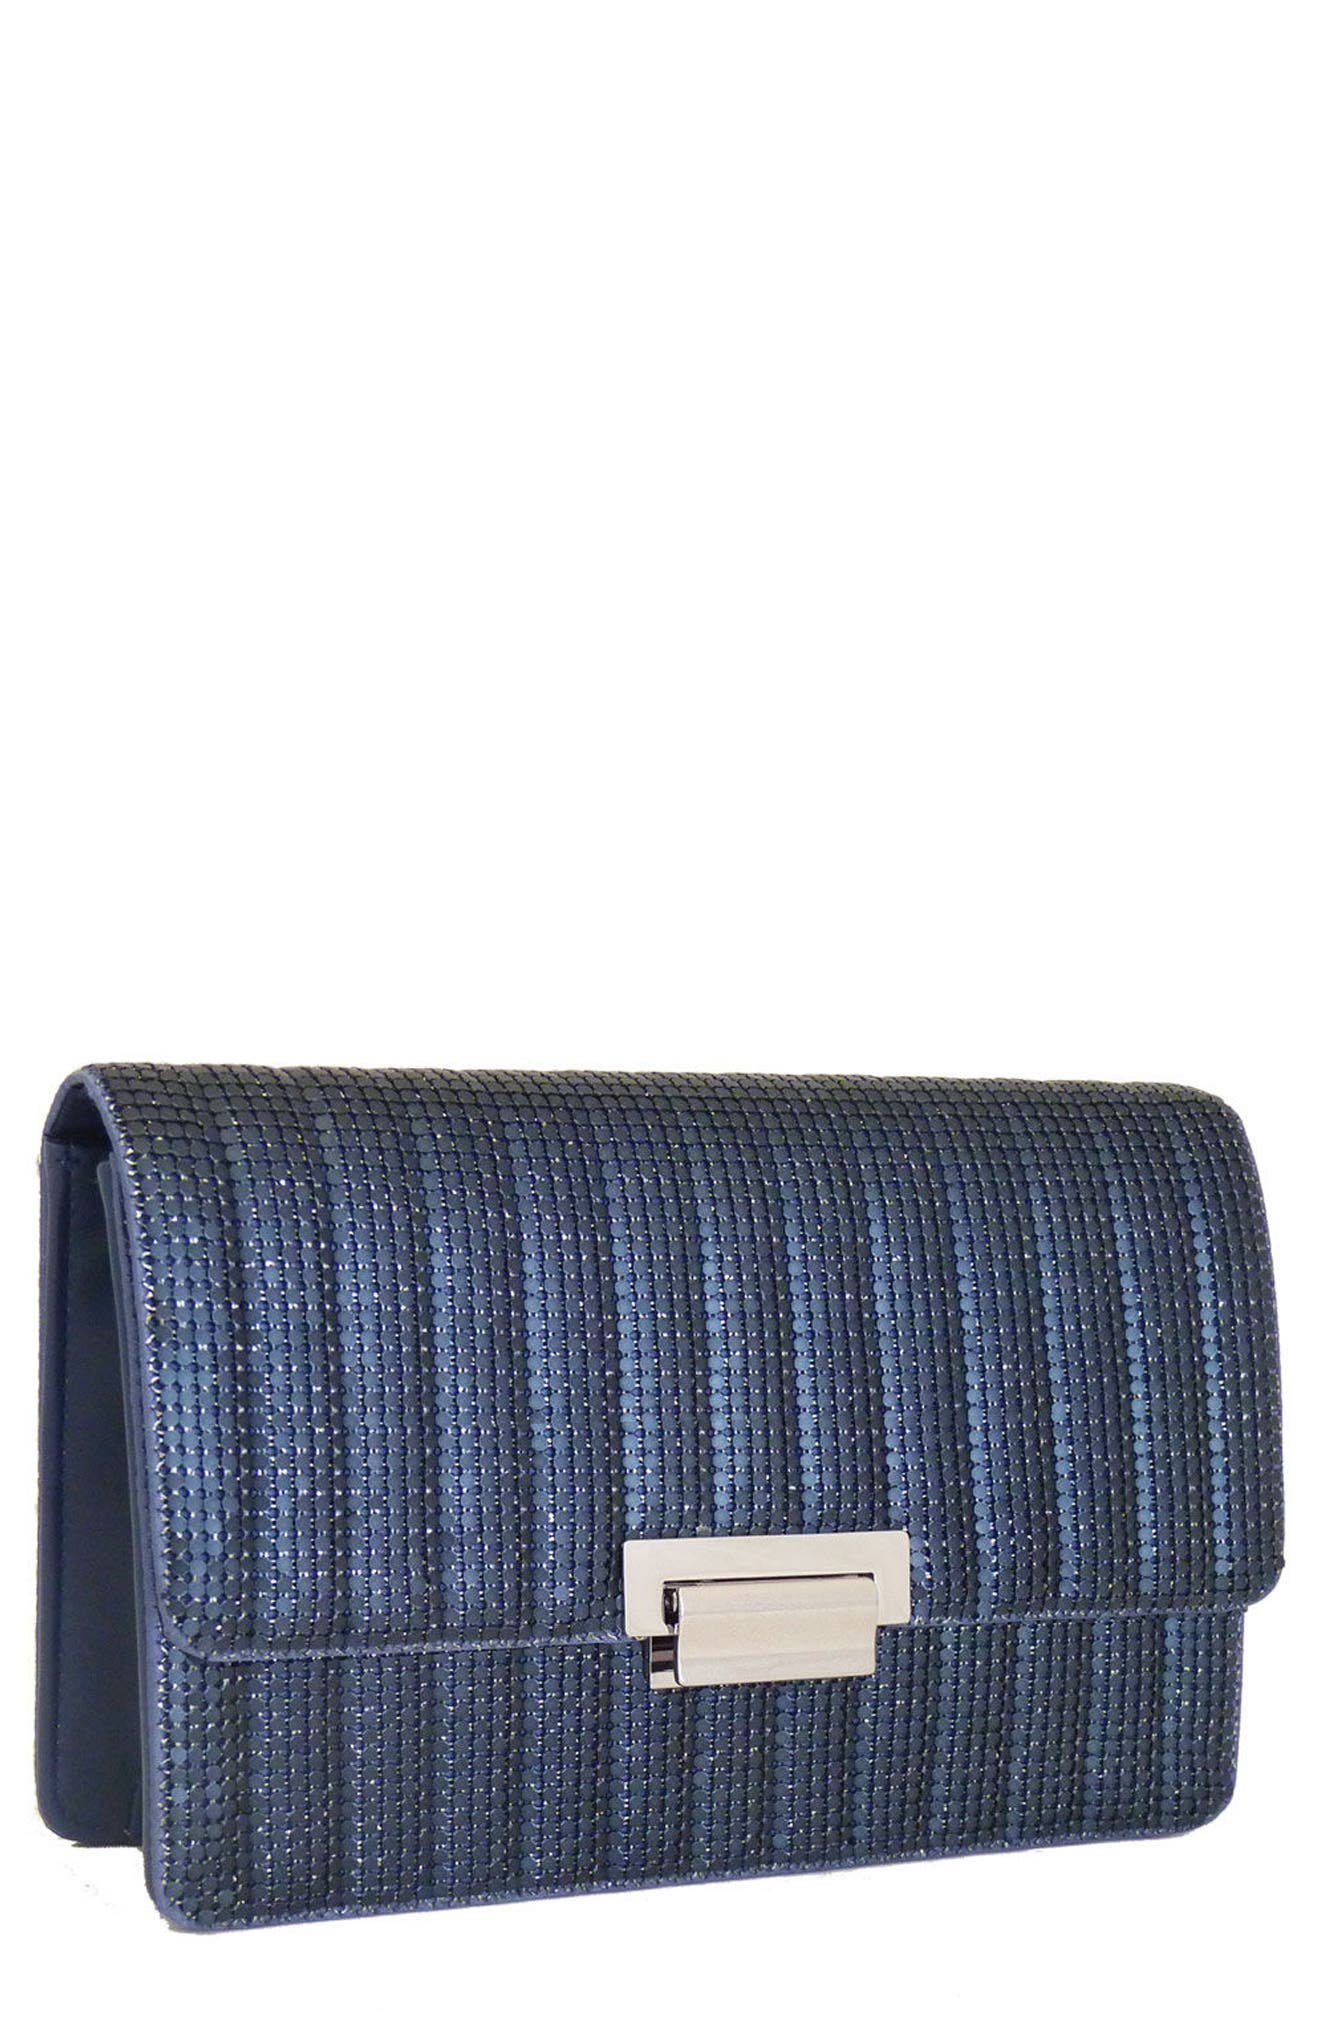 Sydney Quilted Clutch,                             Main thumbnail 1, color,                             Midnight